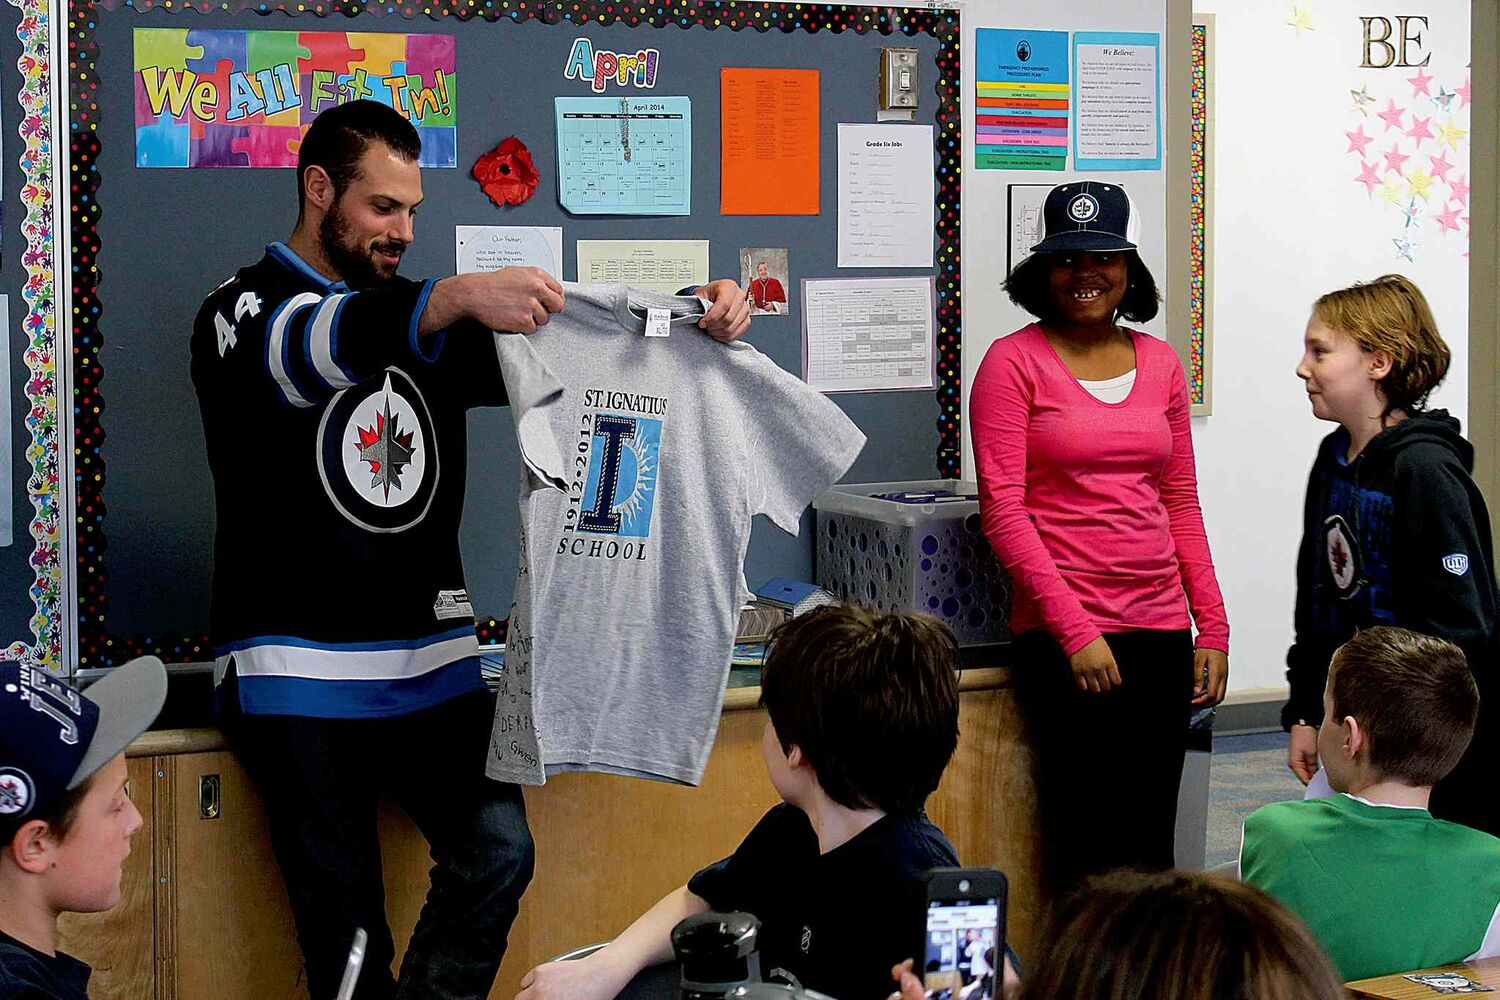 Winnipeg Jets defenceman Zach Bogosian checks out a t-shirt presented to him by a class of sixth grade students. Bogosian paid a visit to students at St. Ignatius School as a reward for winning the Classroom Recycling Challenge.  (Jordan Thompson)